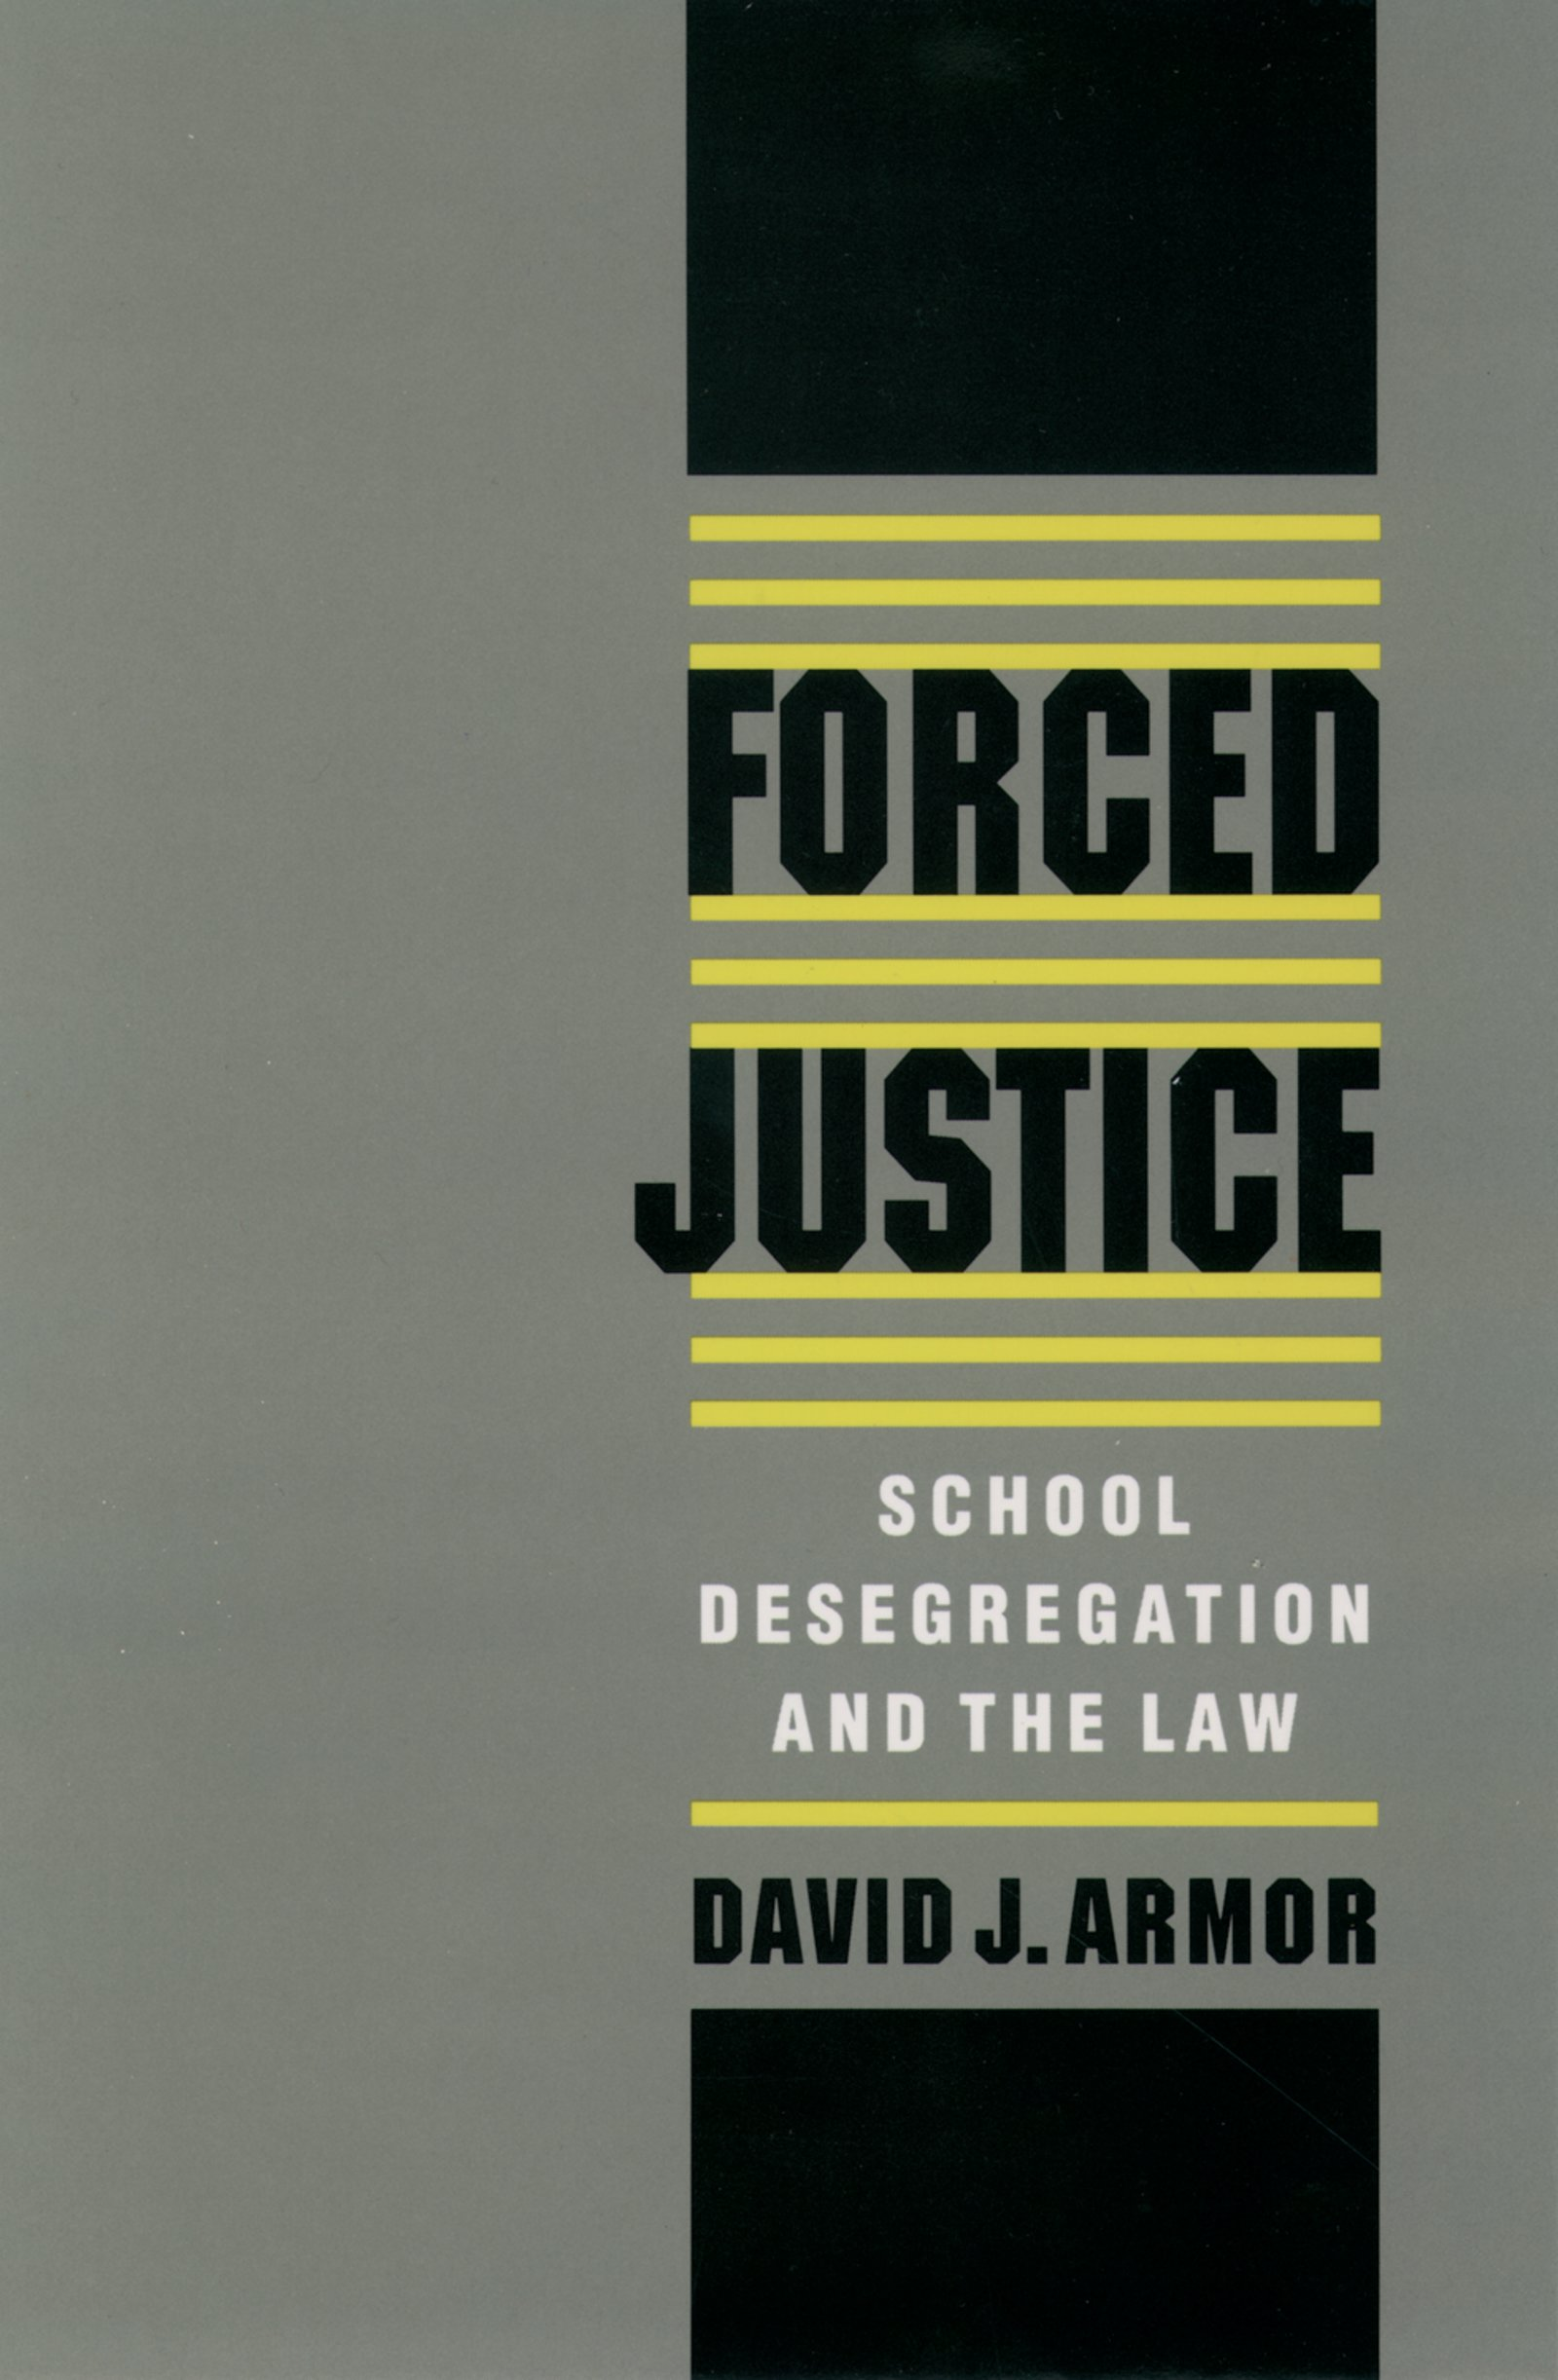 Forced JusticeSchool Desegregation and the Law